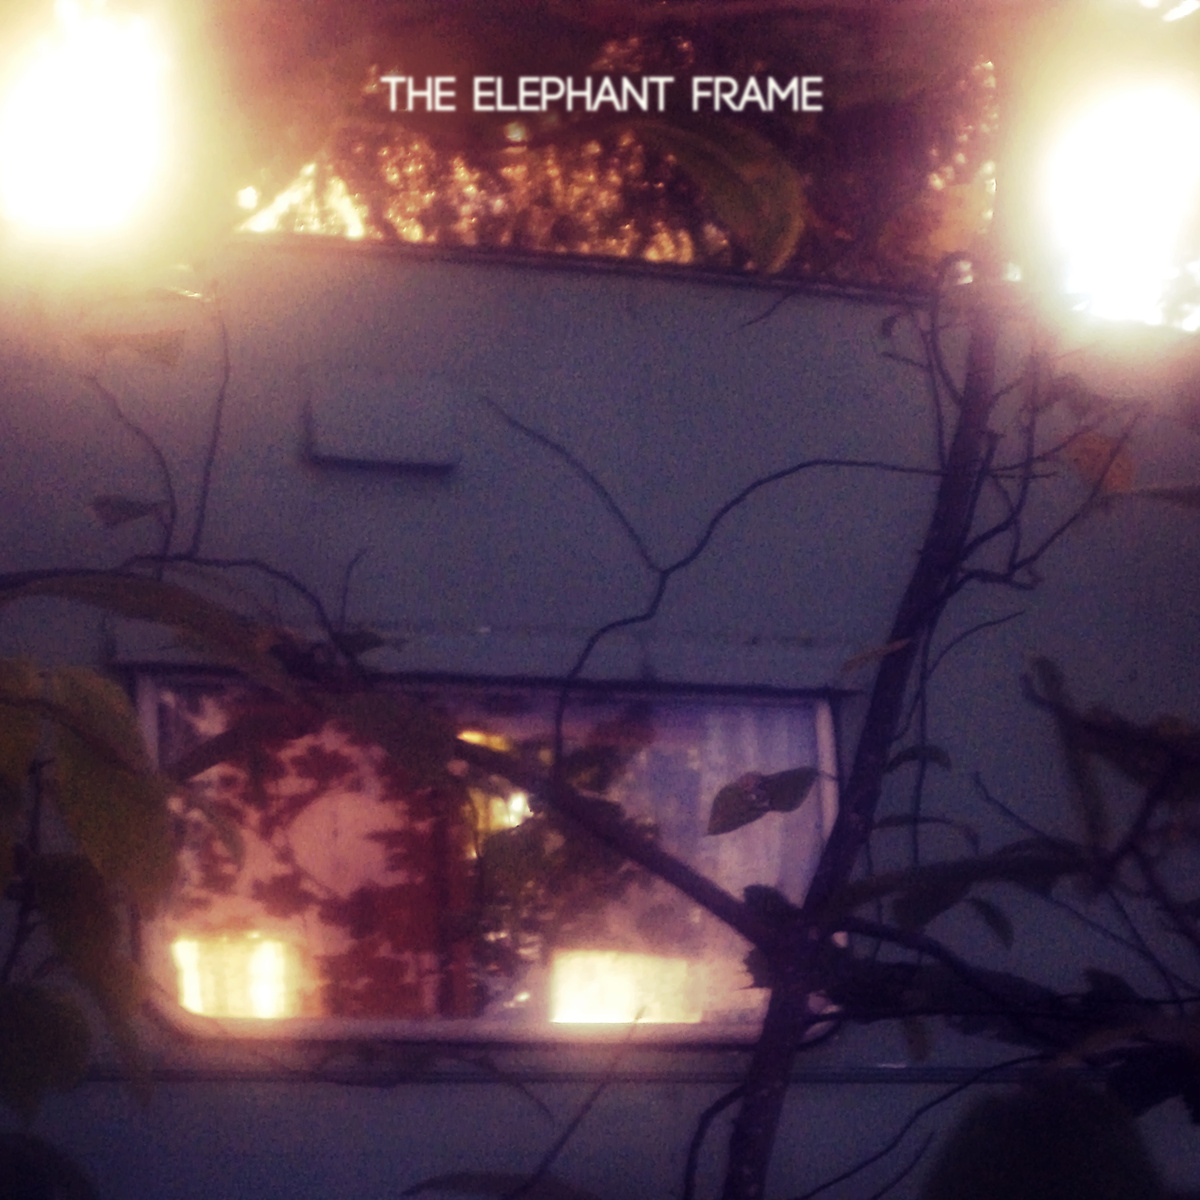 The Elephant Frame The Elephant Frame EP